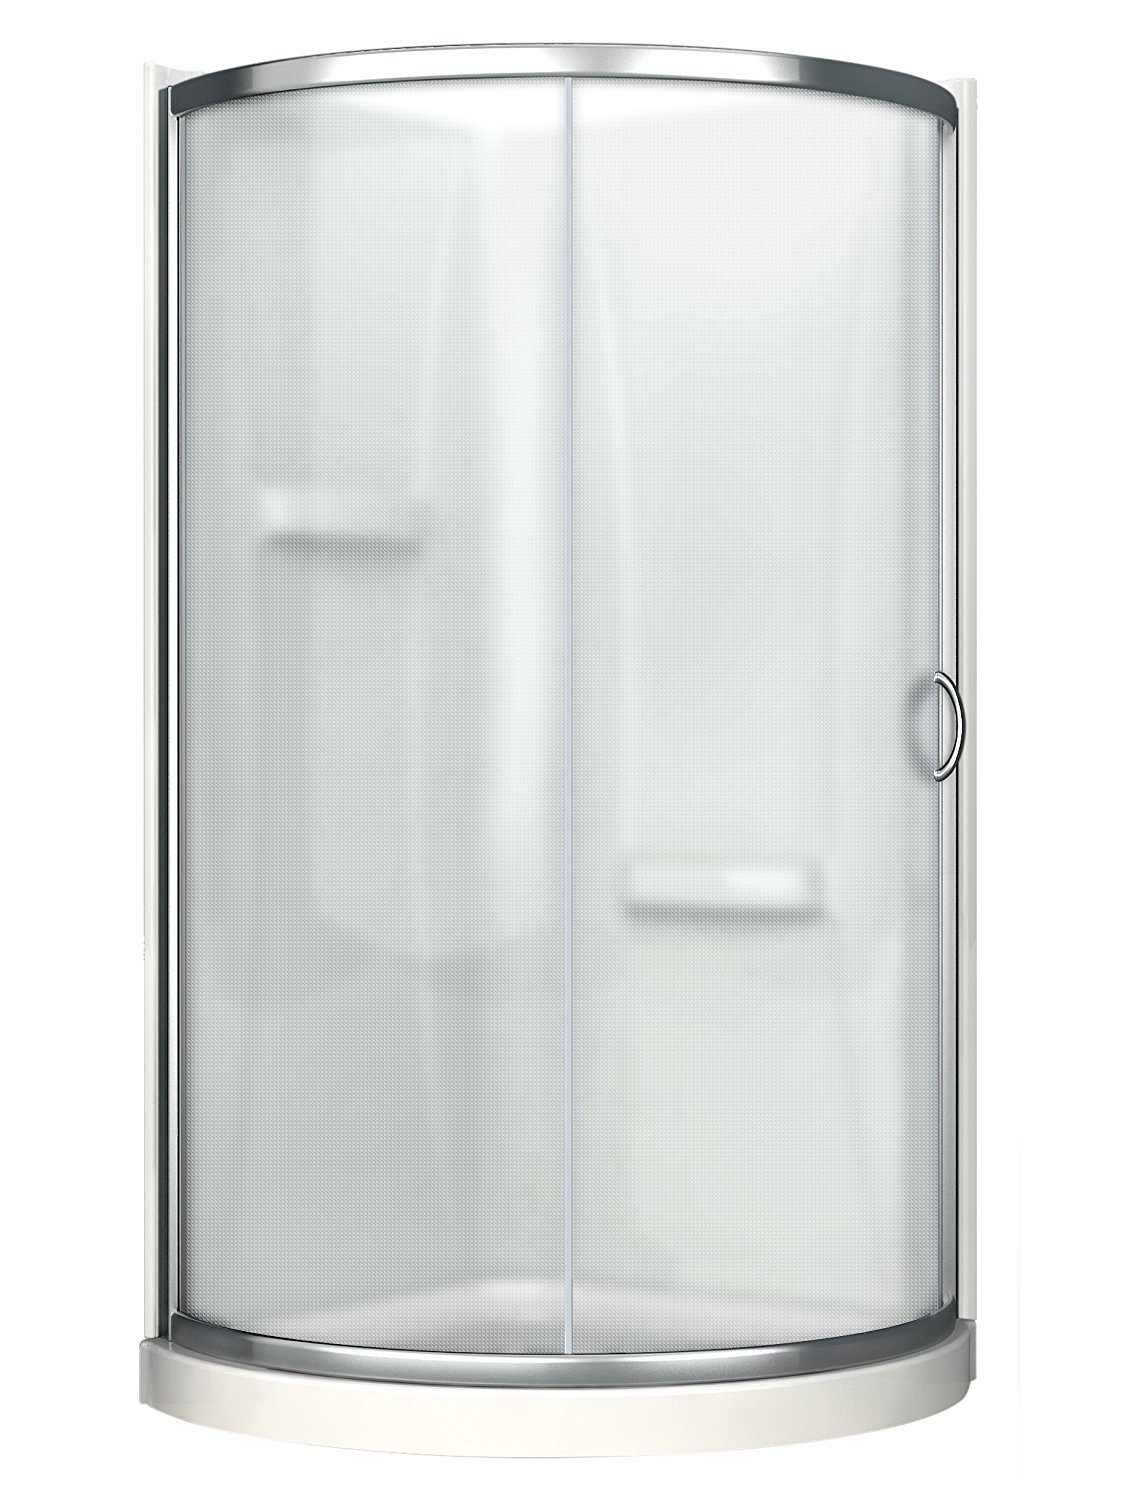 Shower Base And Walls Kit.Ove Decors Breeze 38 Withwalls Premium 38 Inch Shower Kit With Acrylic Base And Walls And Clear Glass Sliding Door